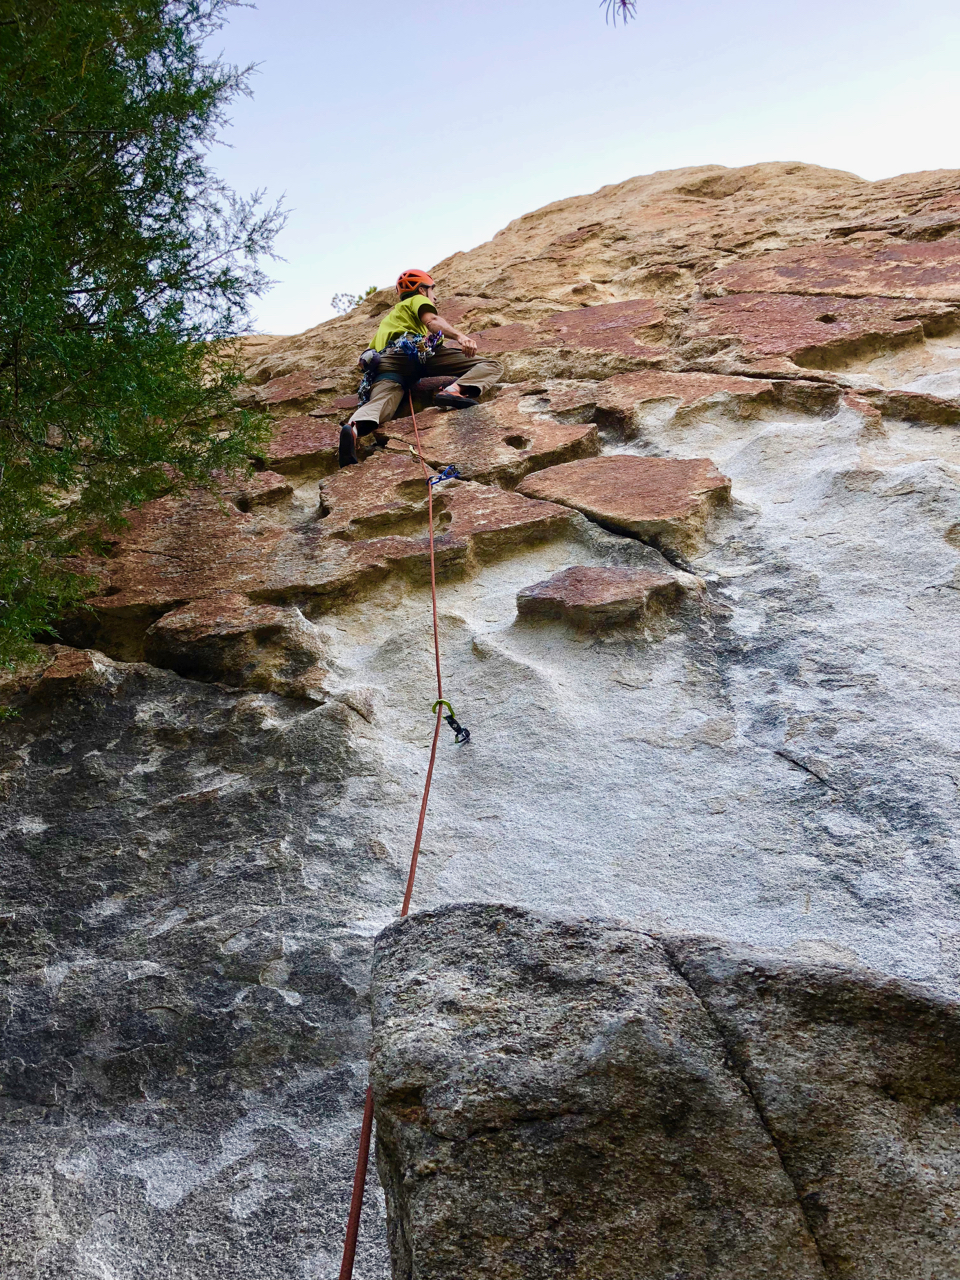 On Short Circuit (5.10a) in the Inner City. Bring a selection of small to medium cams to supplement the two bolts on the route.